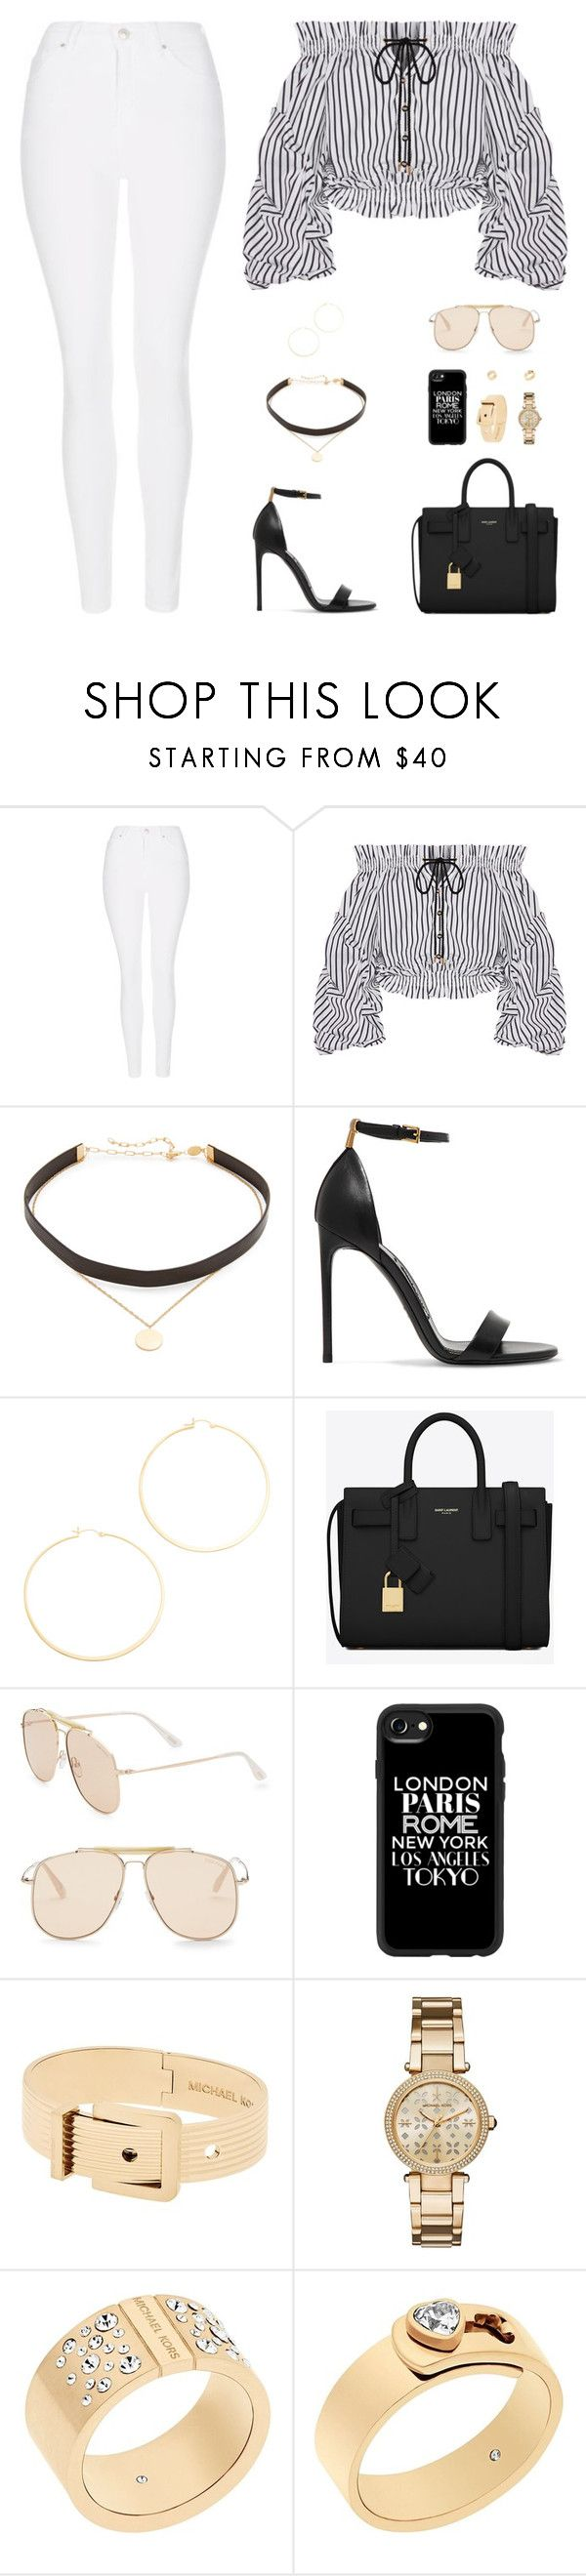 """Sin título #4974"" by mdmsb on Polyvore featuring moda, Topshop, Caroline Constas, Jennifer Zeuner, Tom Ford, Yves Saint Laurent, Casetify y Michael Kors"